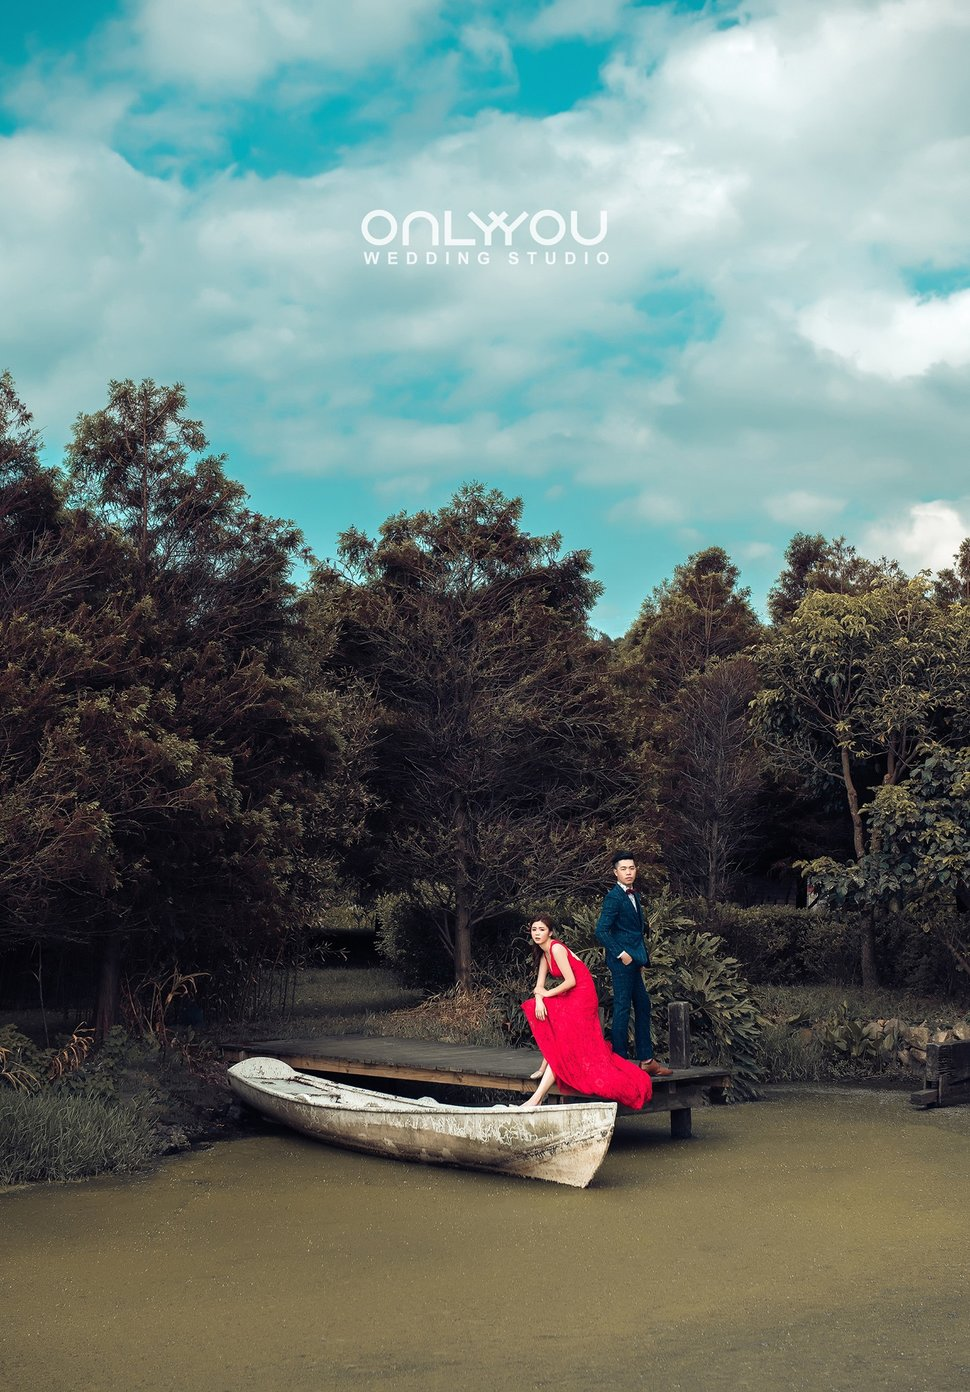 69019139_2327928447262788_2331984439329947648_o - ONLY YOU 唯你婚紗攝影《結婚吧》